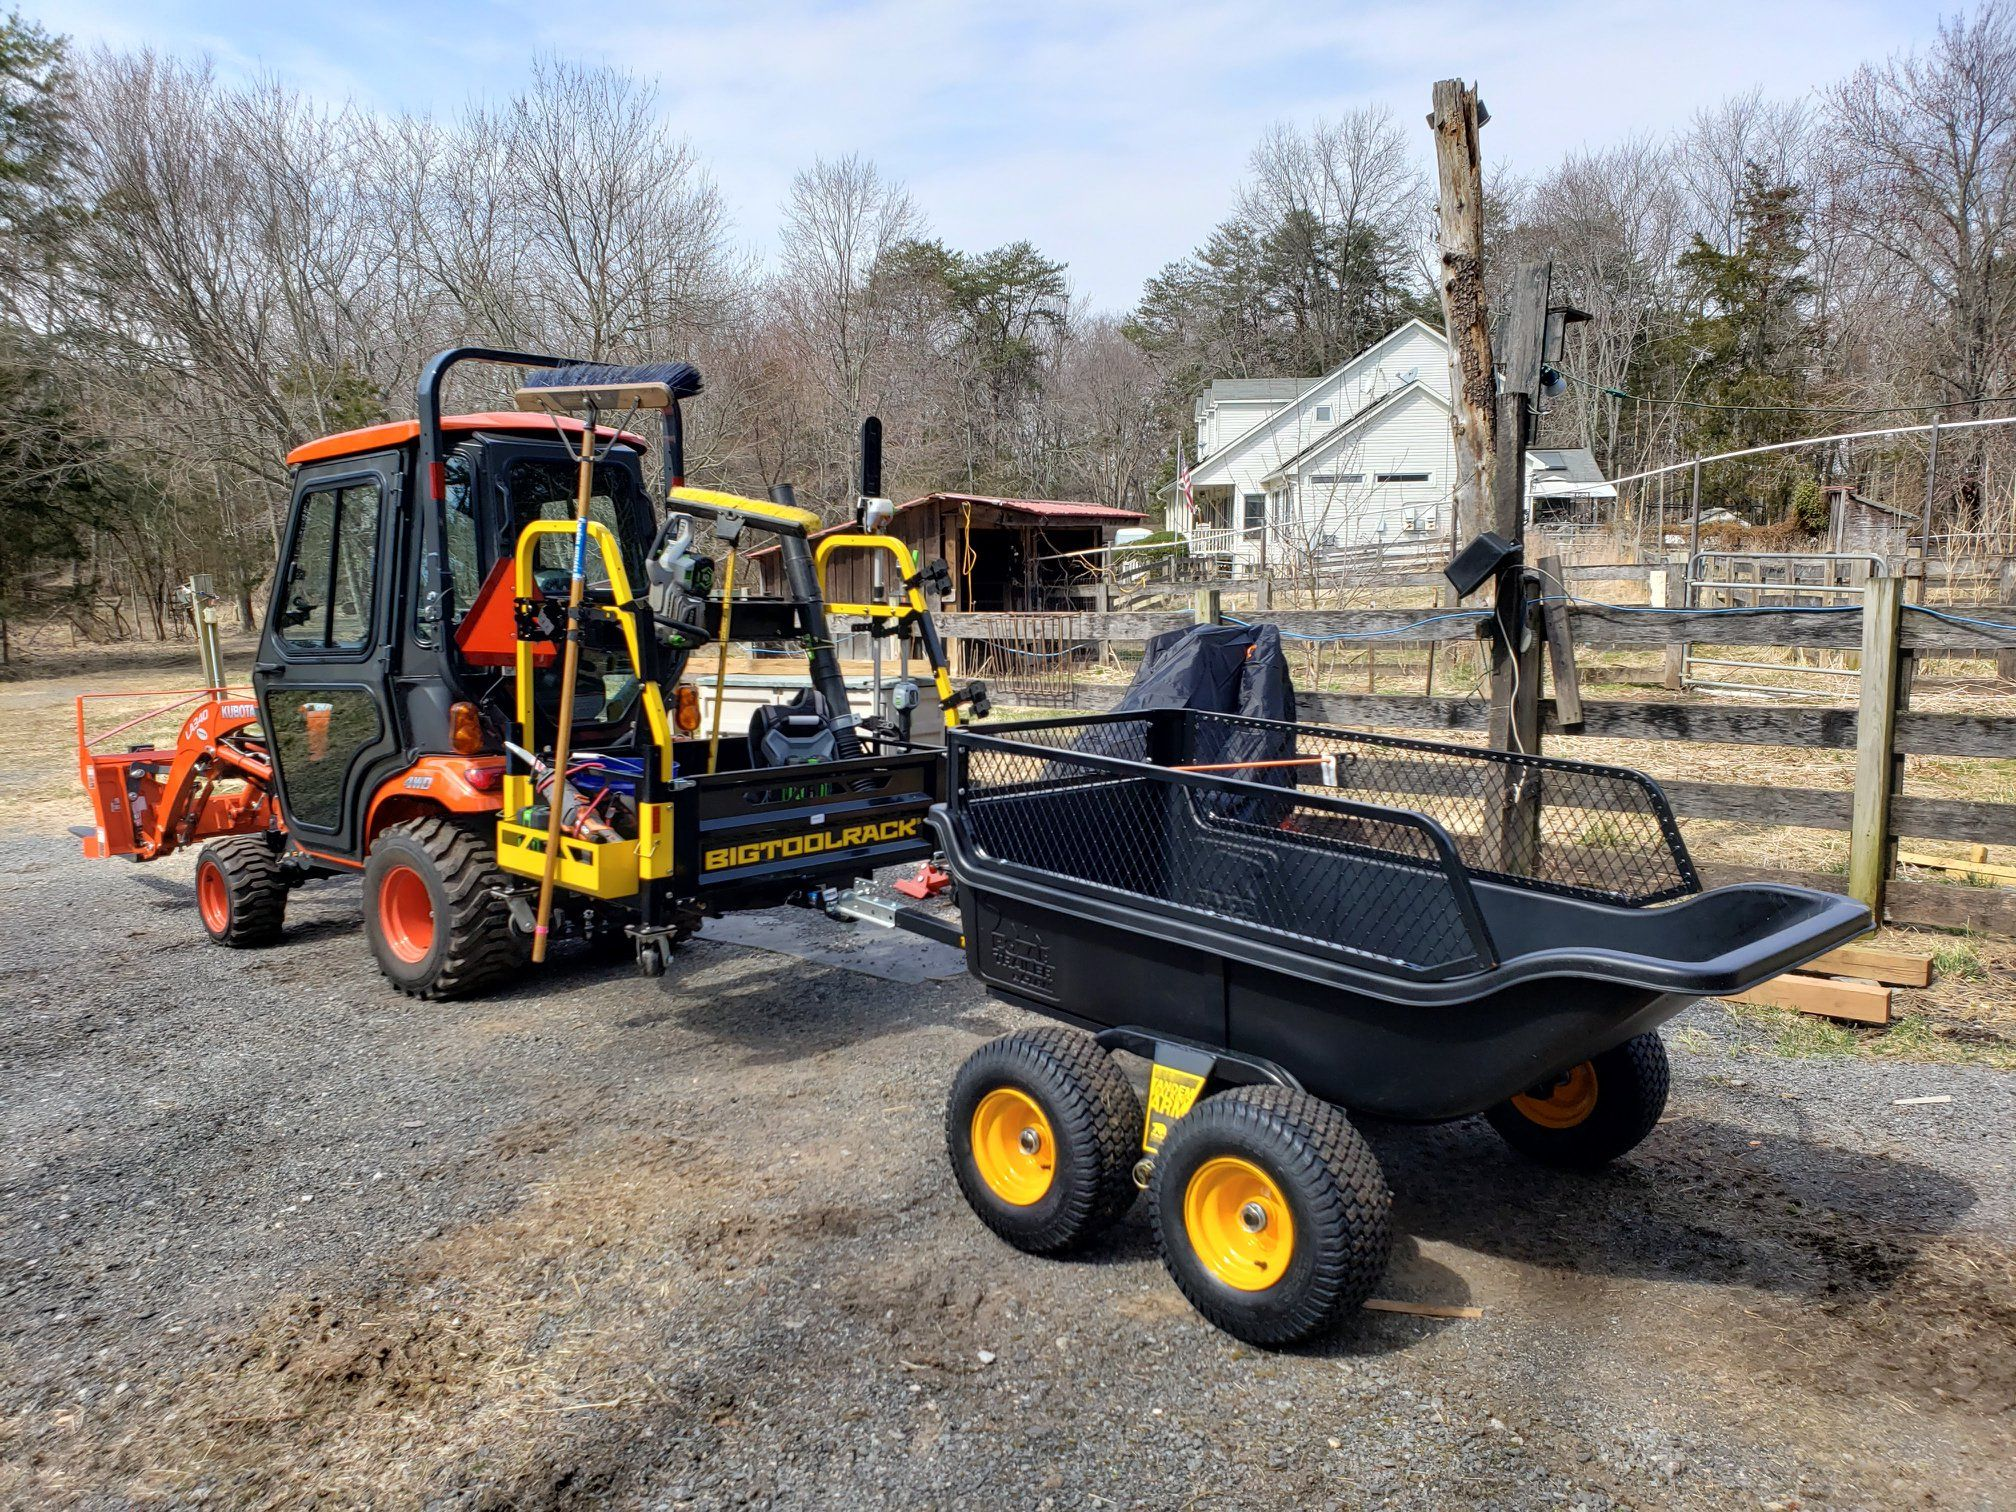 Pin by Chase on BIGTOOLRACK Tractor attachments